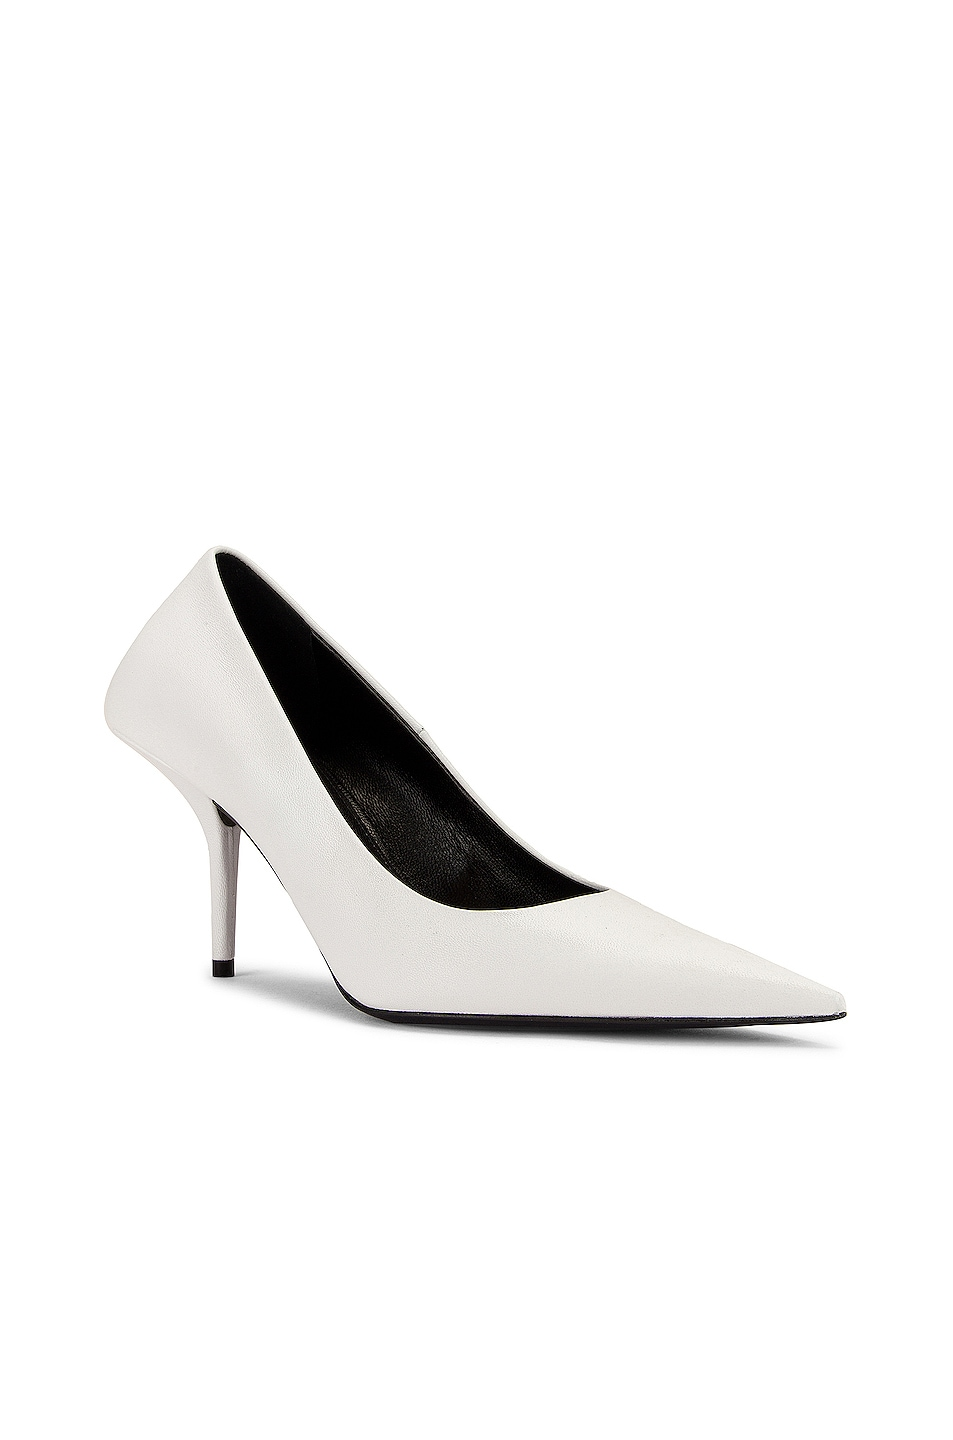 Image 2 of Balenciaga Square Knife Pumps in White